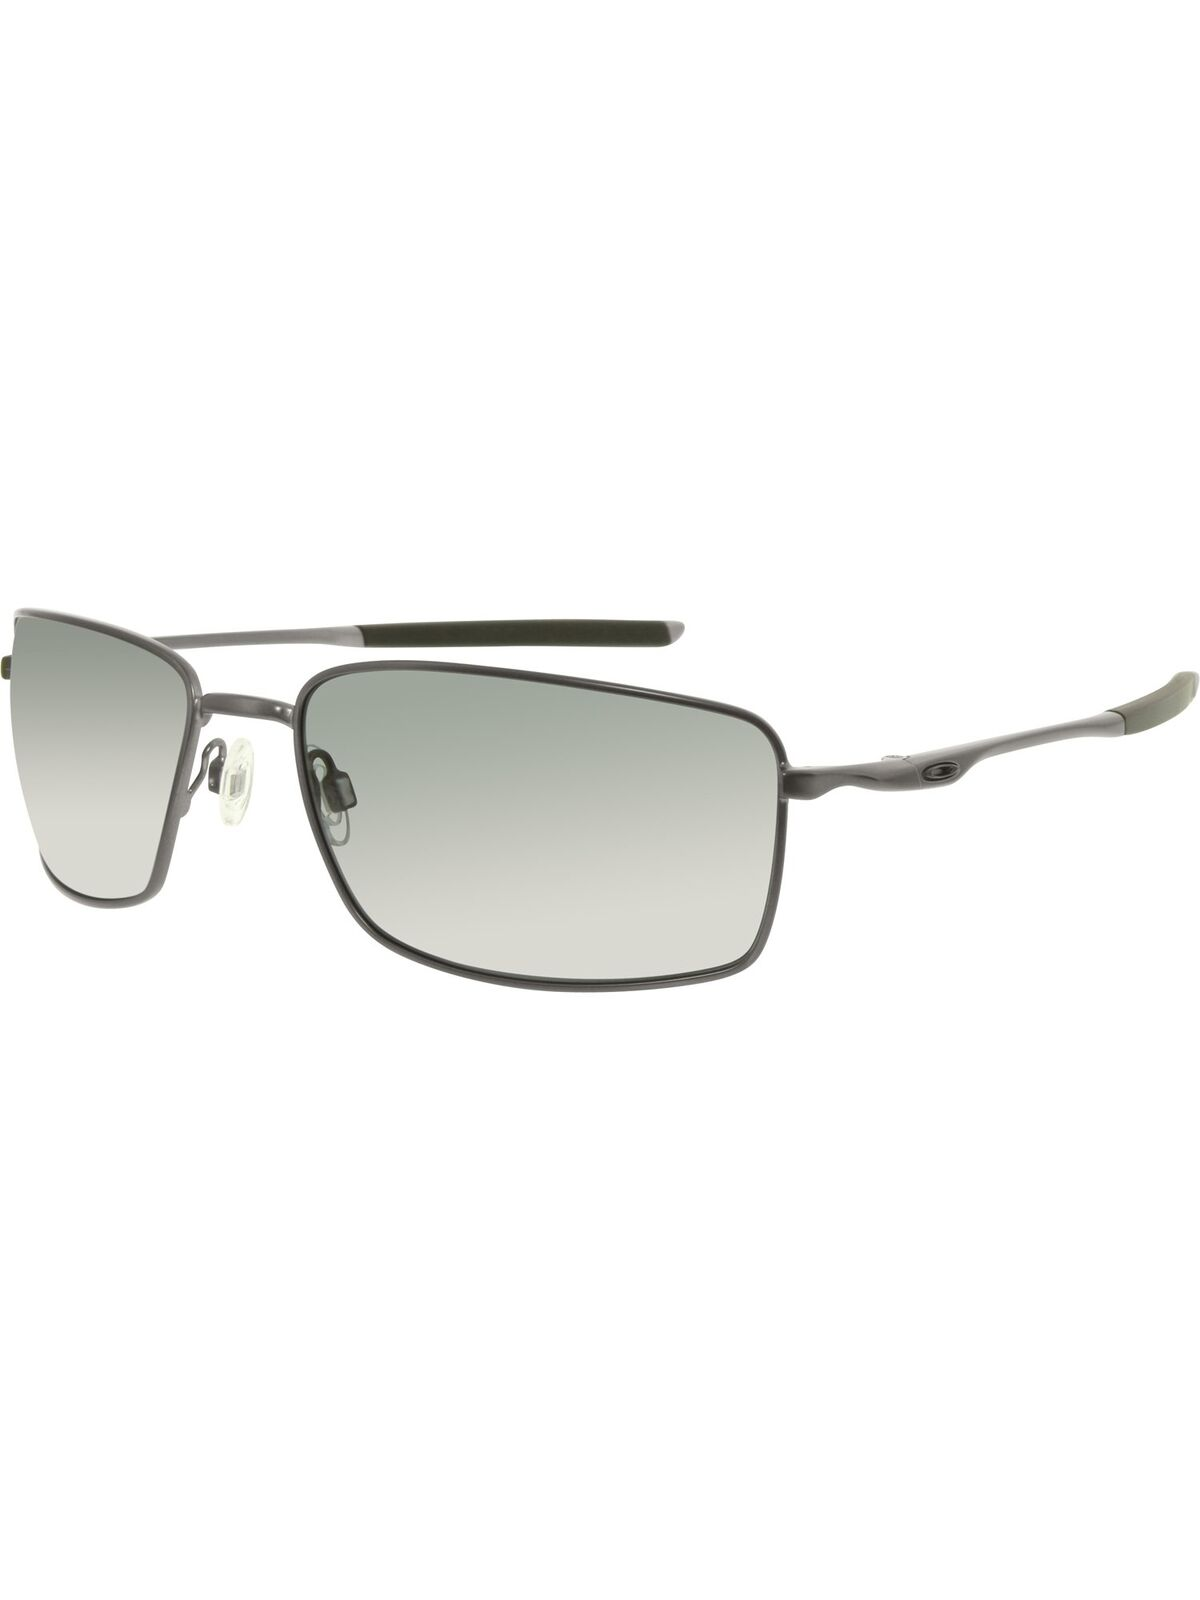 99a85b15619 Oakley Oo4075 Square Wire 407504 Carbon Size 60 for sale online